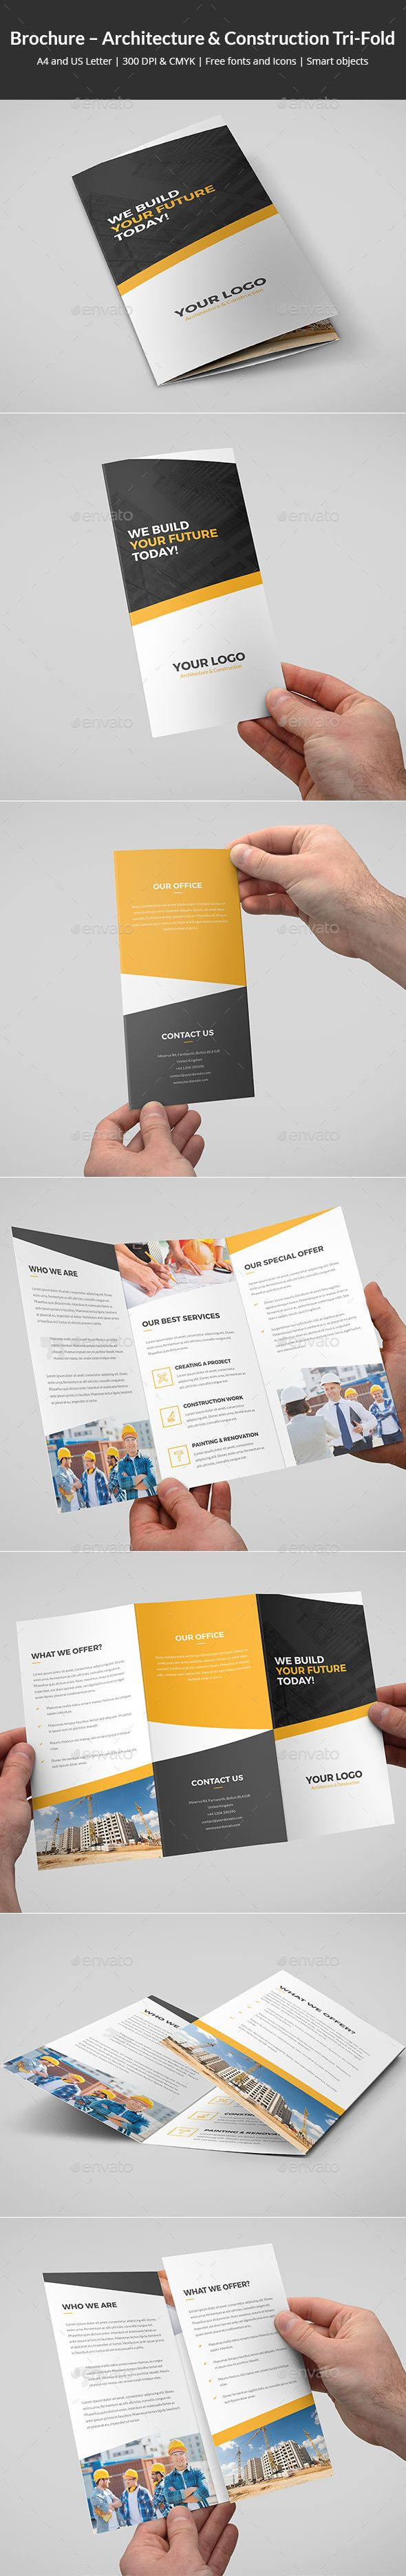 Brochure – Architecture and Construction Tri-Fold - 3Corporate #Brochures Download here: https://graphicriver.net/item/brochure-architecture-and-construction-trifold/19513965?ref=alena994